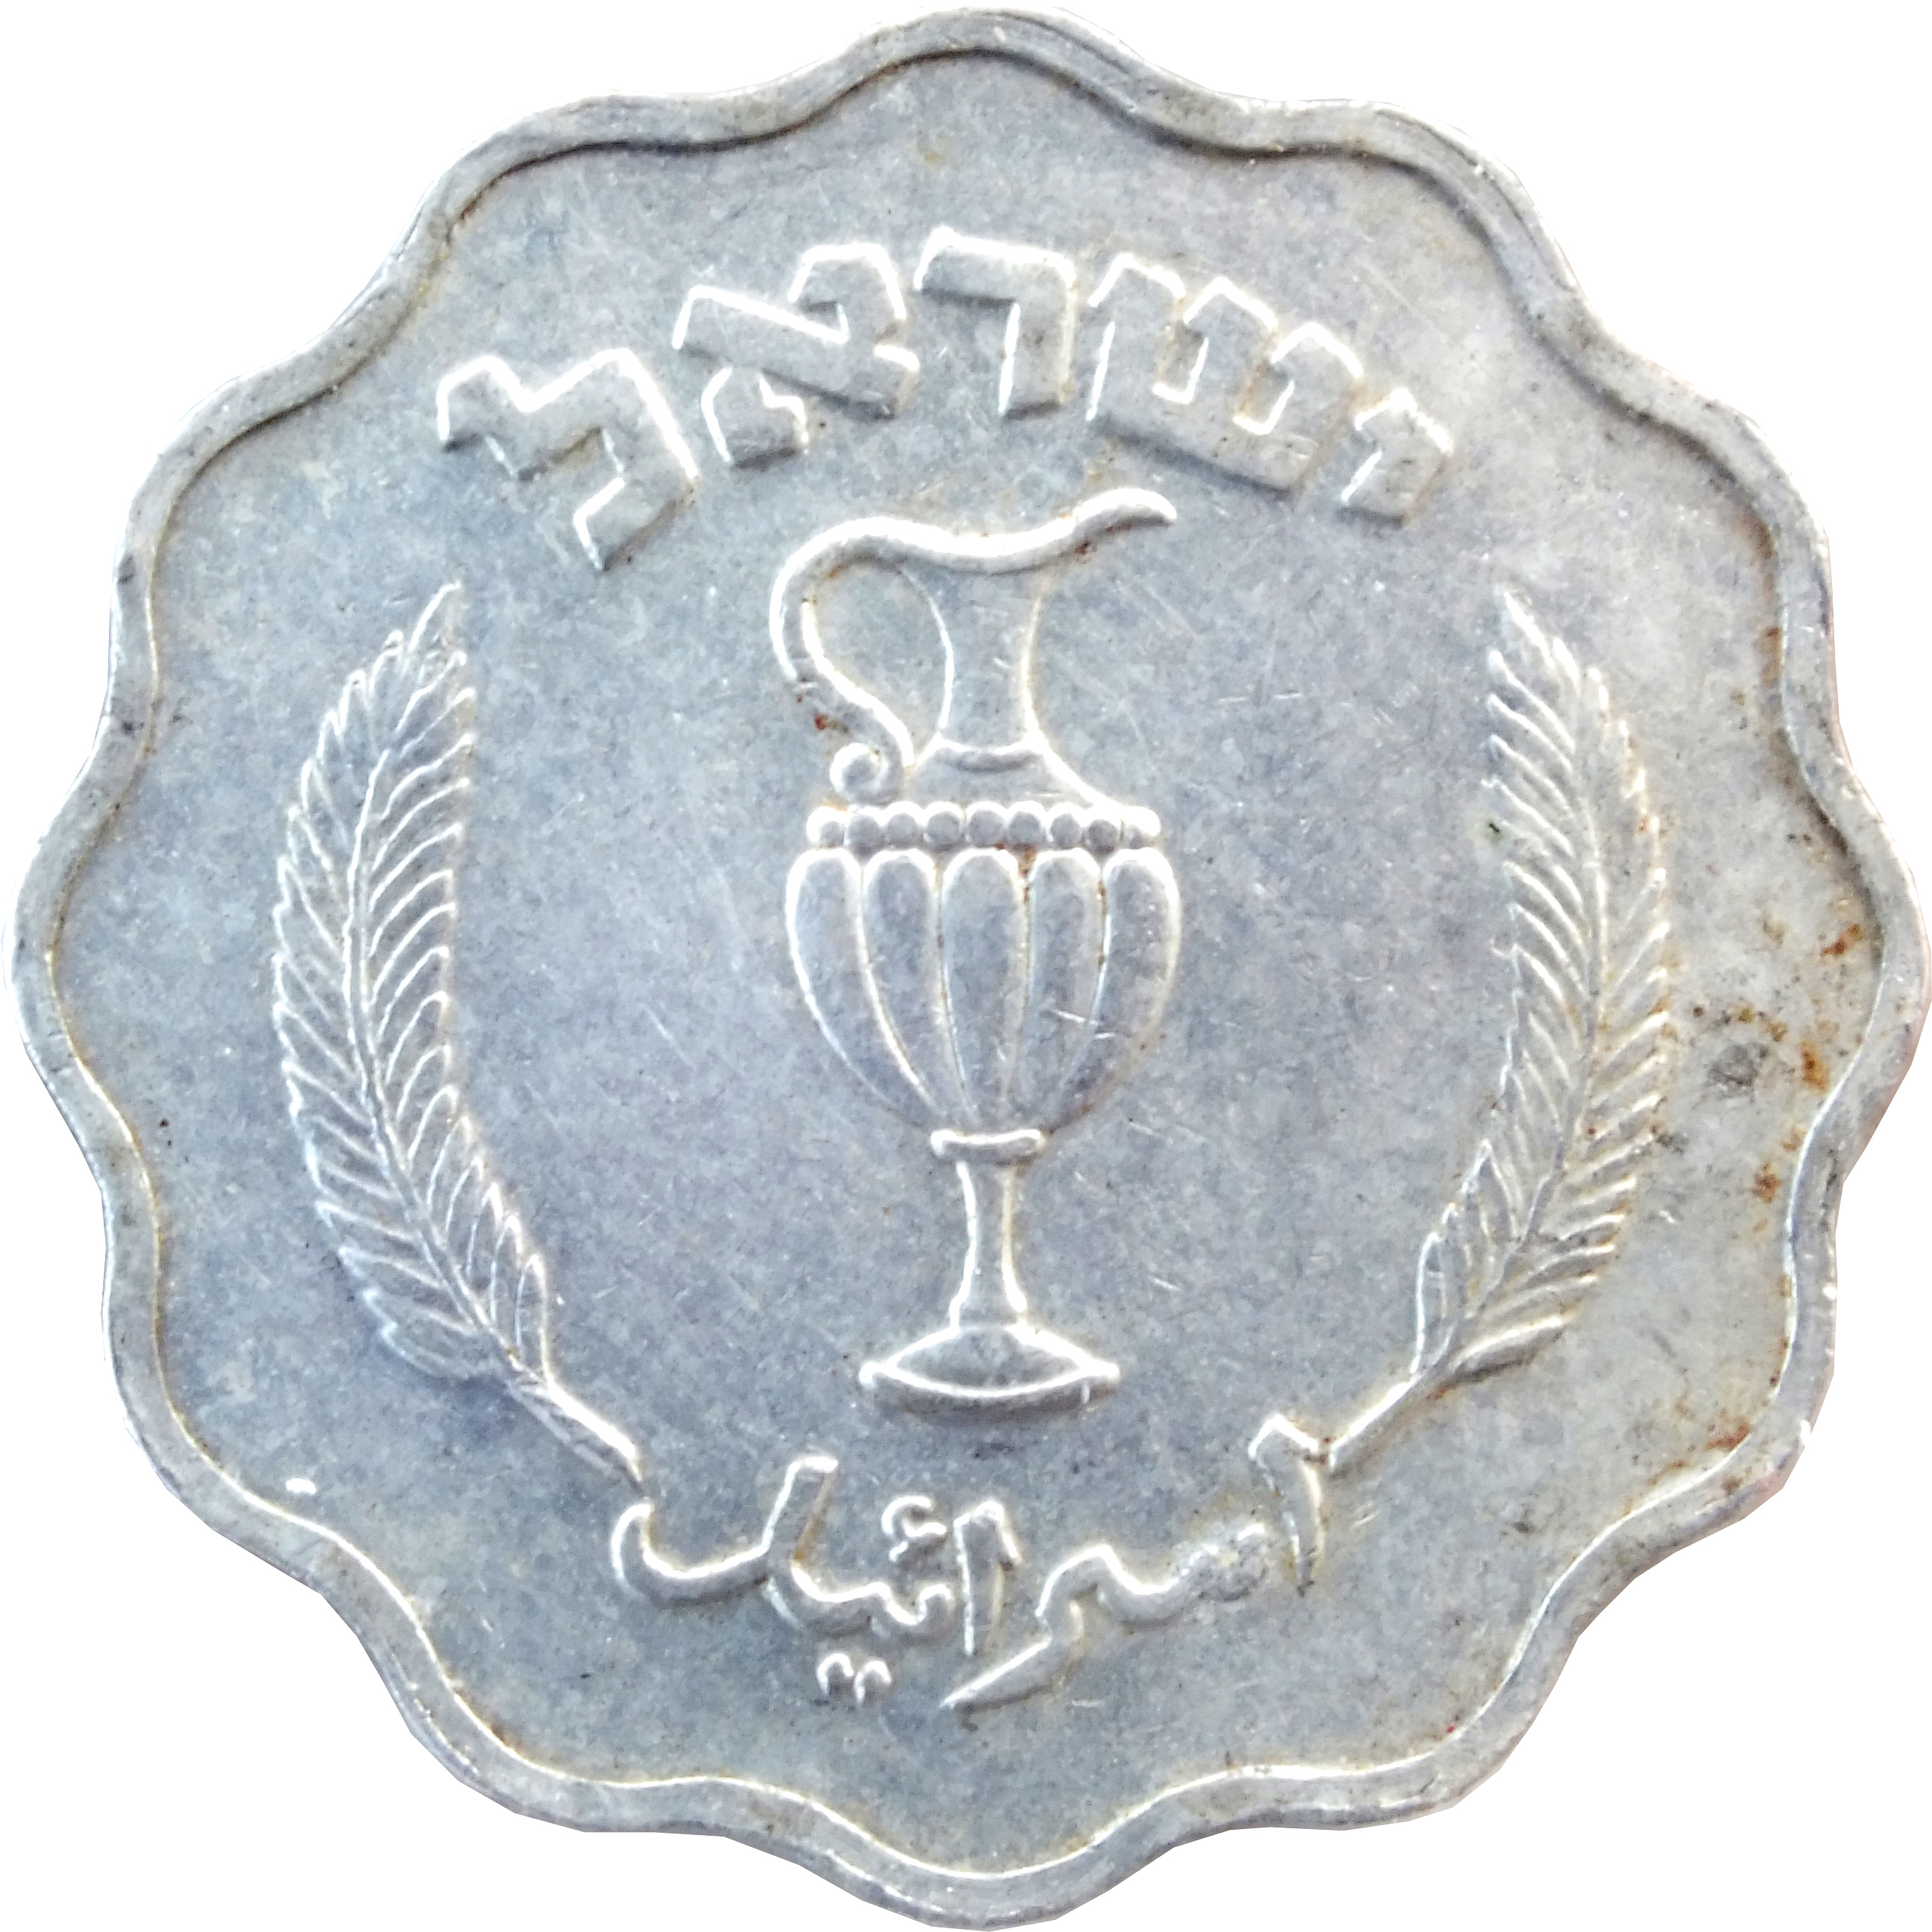 Obverse Of 10 Prutah 1952 Coin With Km 17 From Israel Inscription